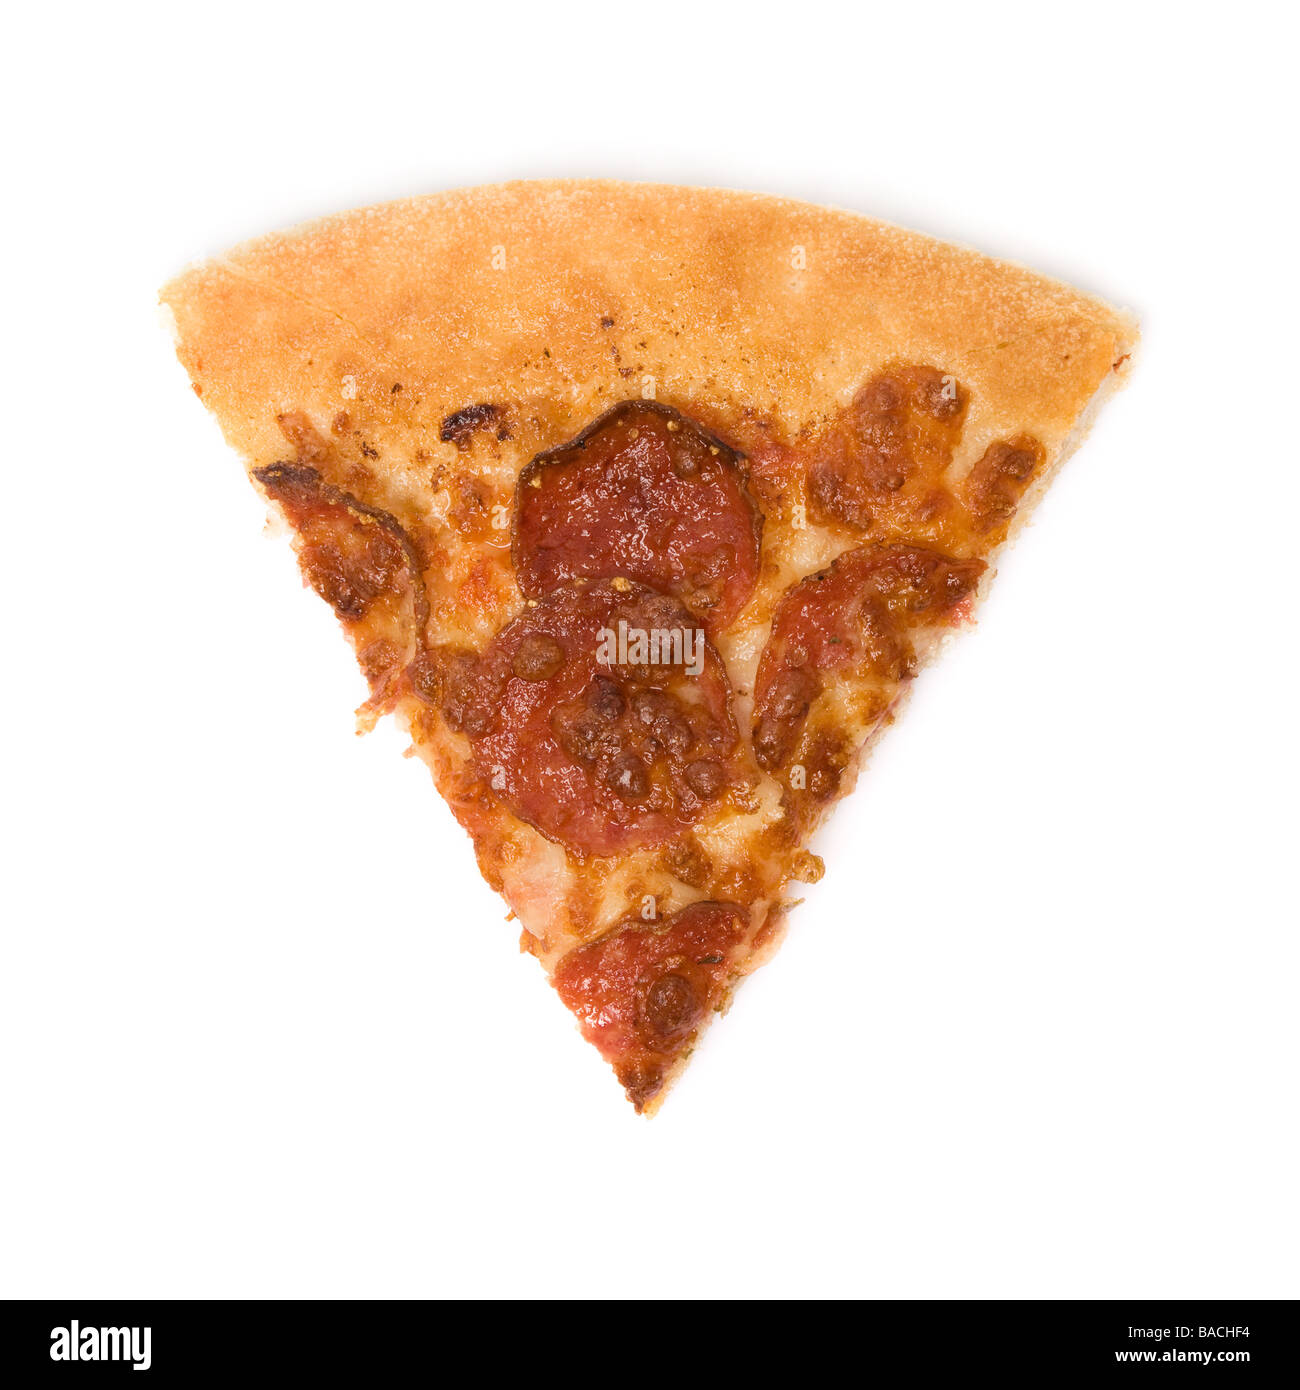 pepperoni pizza slice isolated on white background - Stock Image